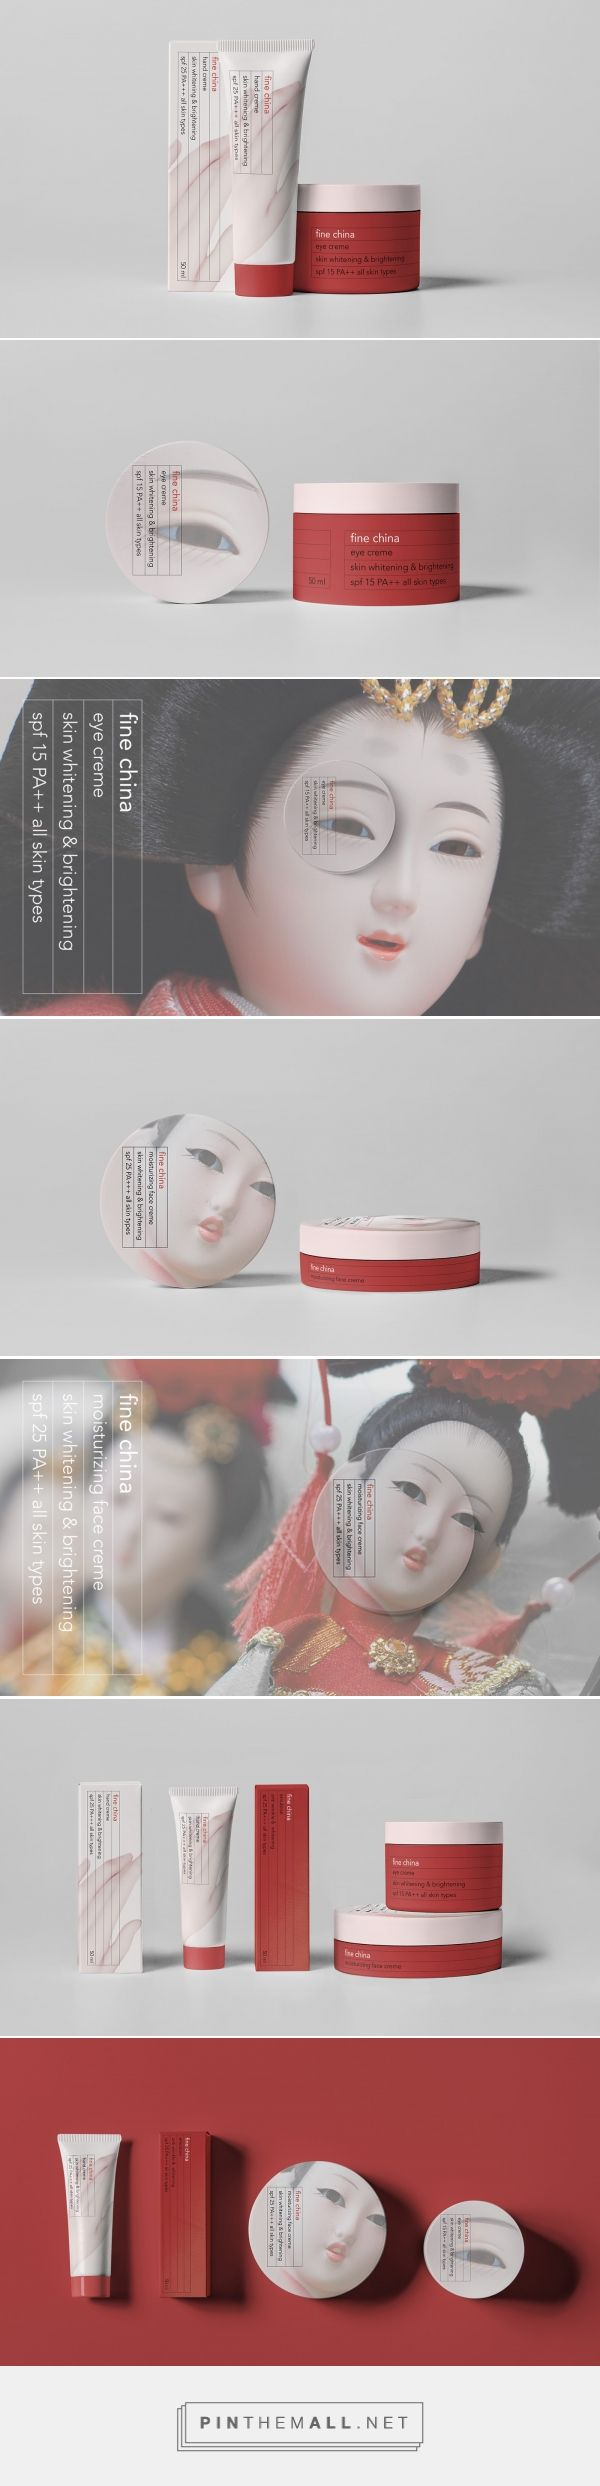 Fine China skin care packaging design by Yulya Ratnikova - http://www.packagingoftheworld.com/2018/01/fine-china.html